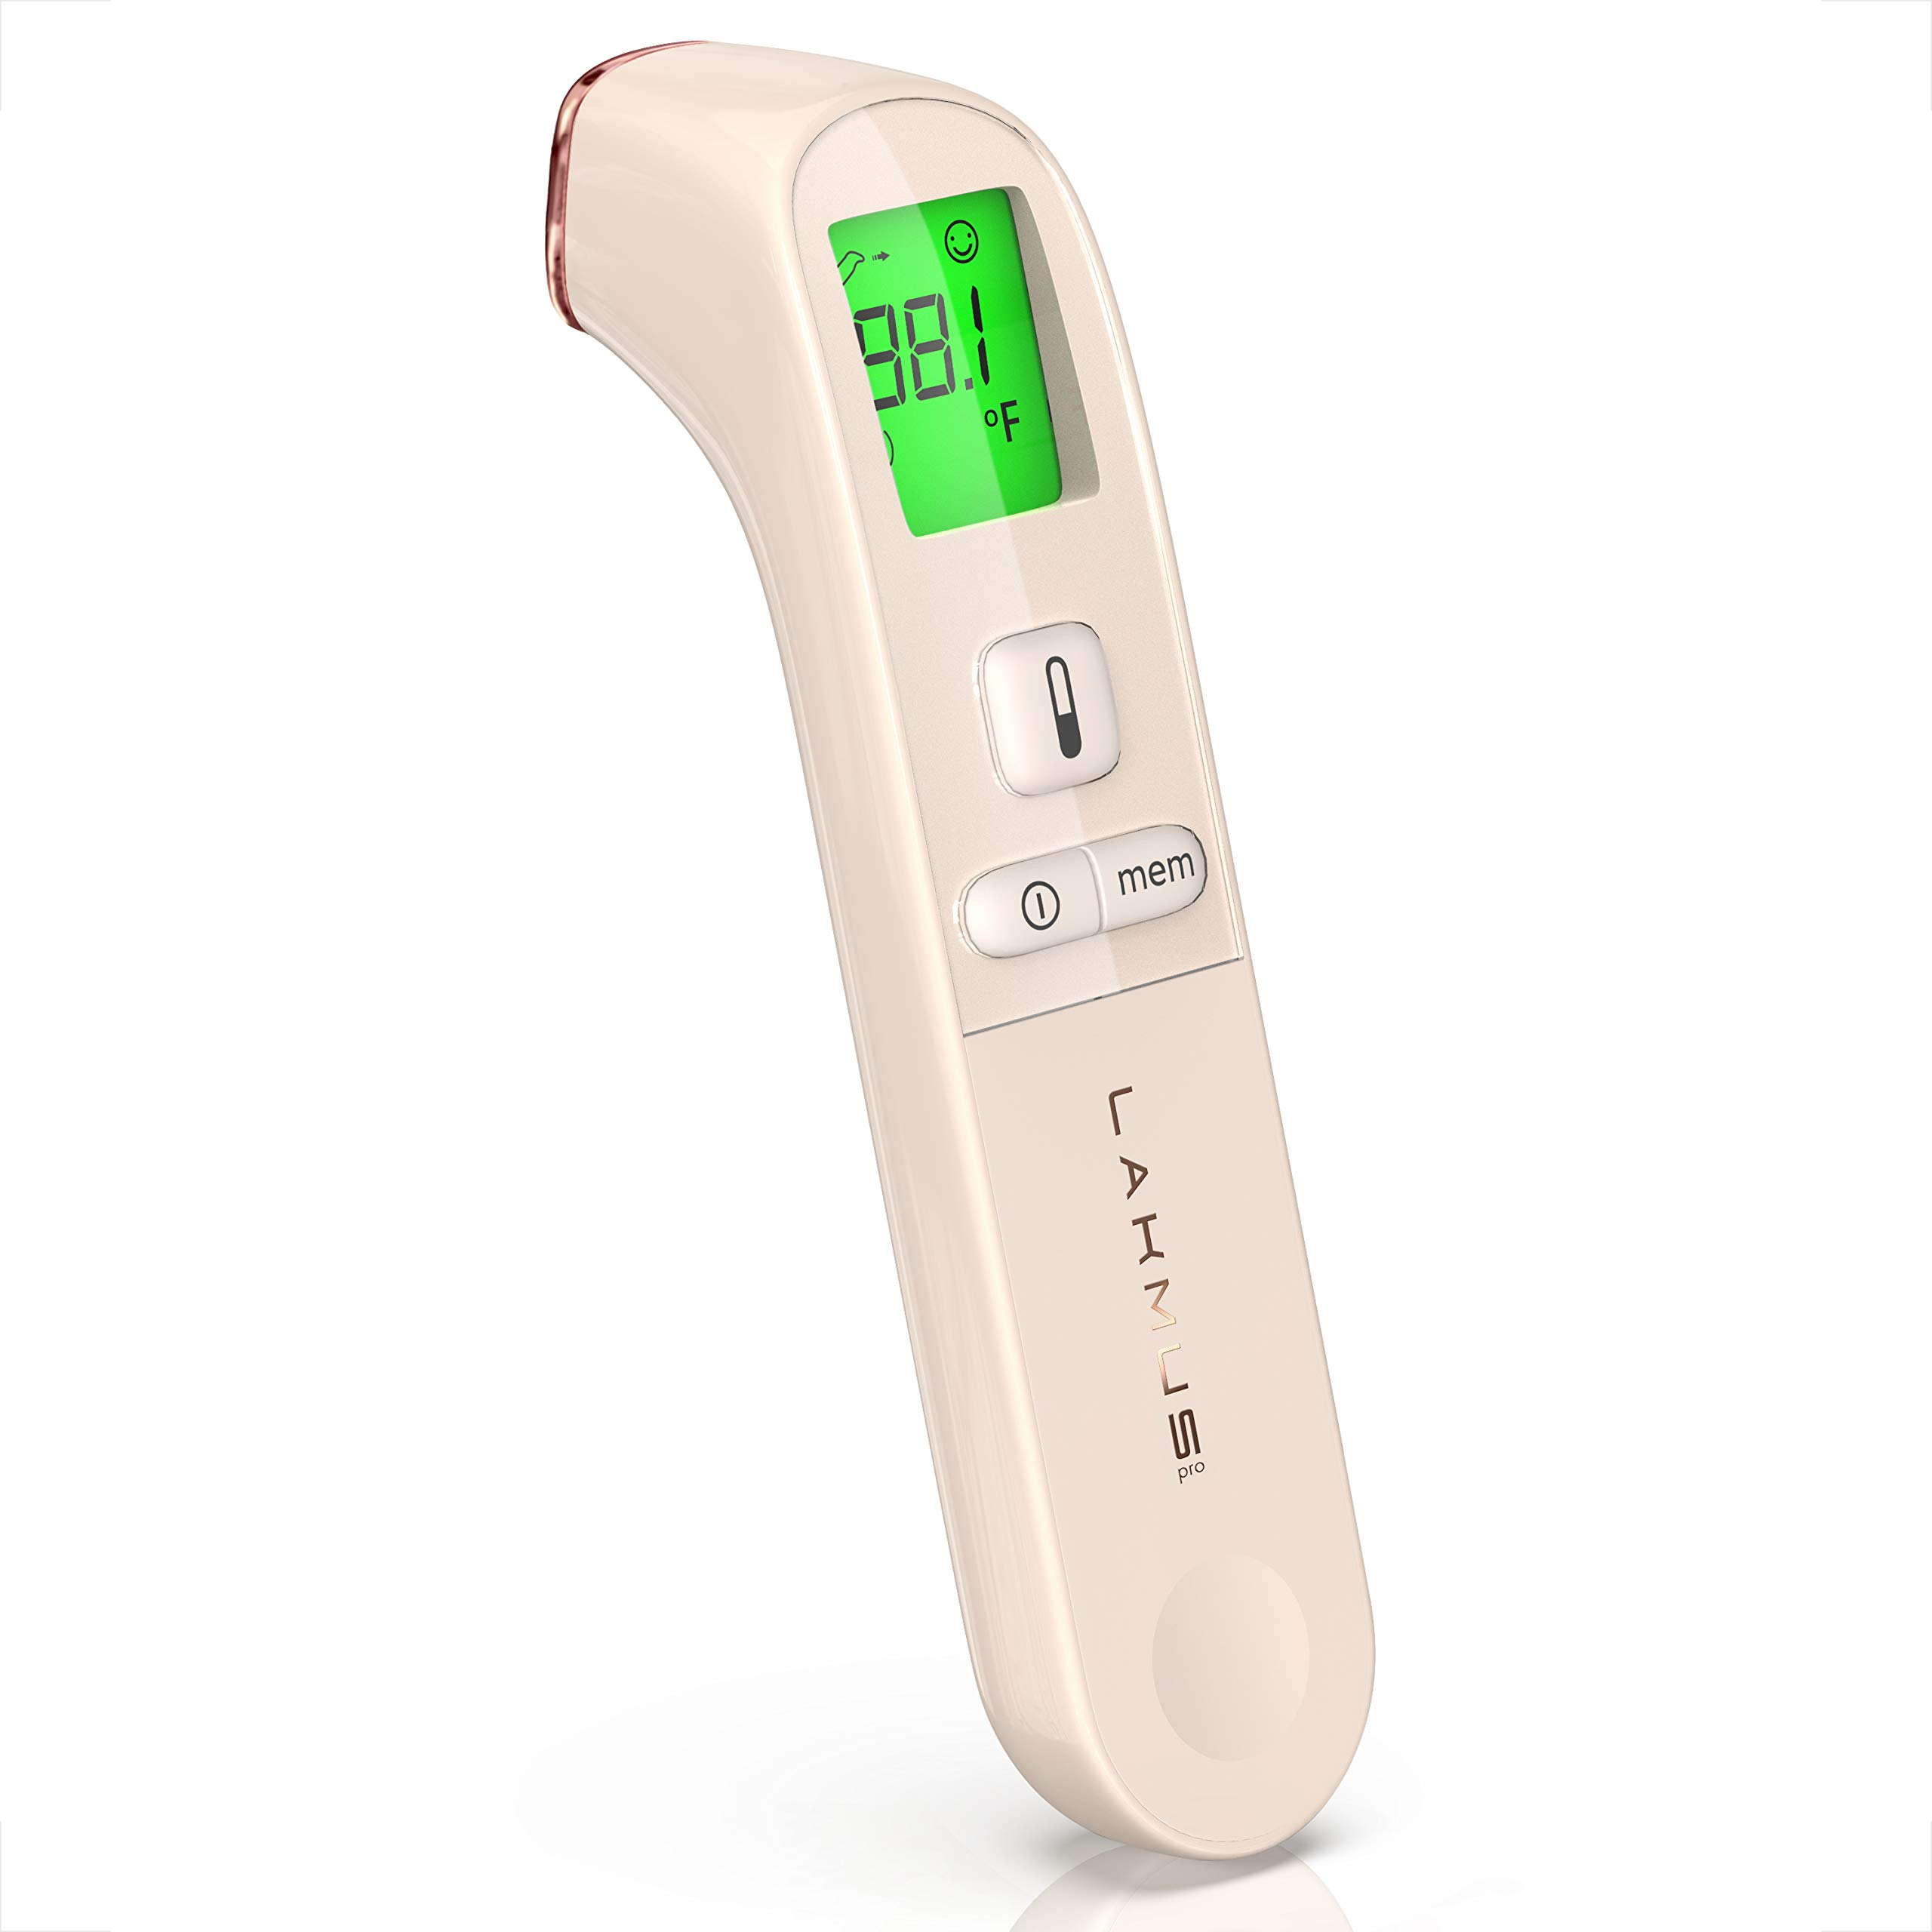 Lakmus Medical Forehead Thermometer for Baby Kids - Instant Accurate Reading - Digital Infrared Temporal Thermometer for Fever - Portable Thermometer with Premium Case - Model of Fast Baby Thermometer by Lakmus Pro